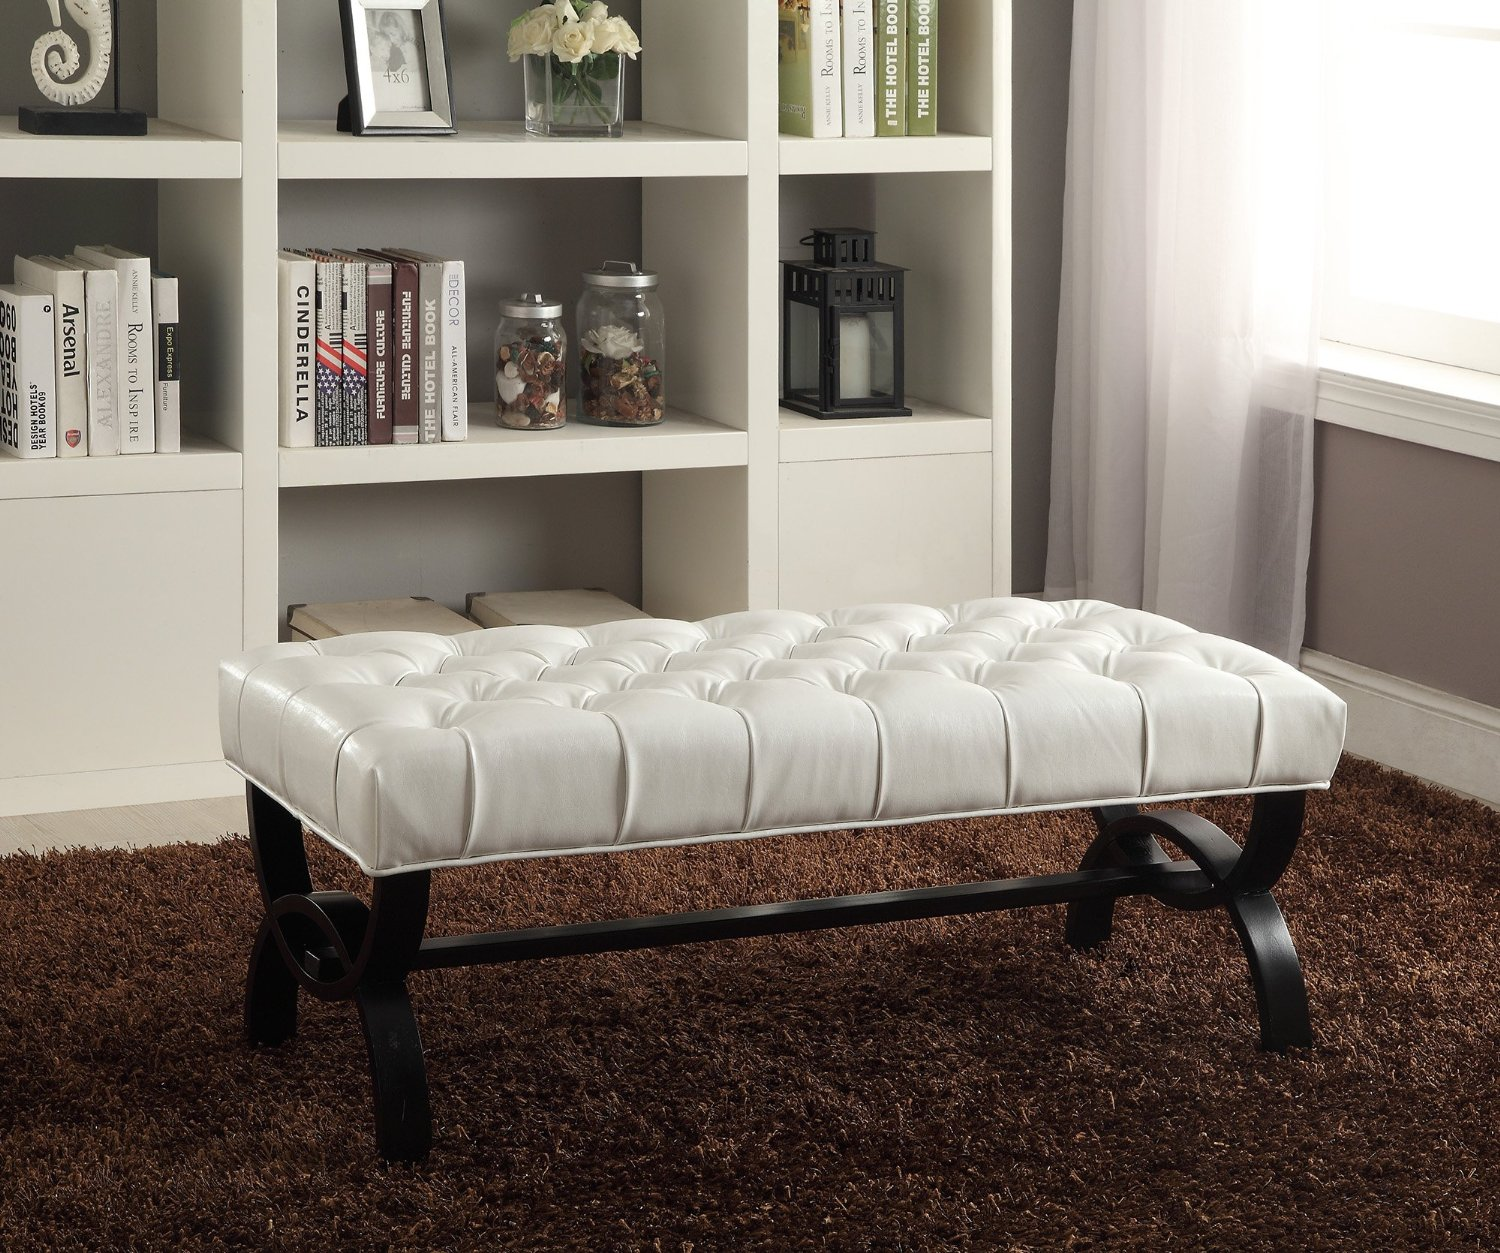 Baxton Studio Viviana Faux Leather Upholstered Tufted Bench White